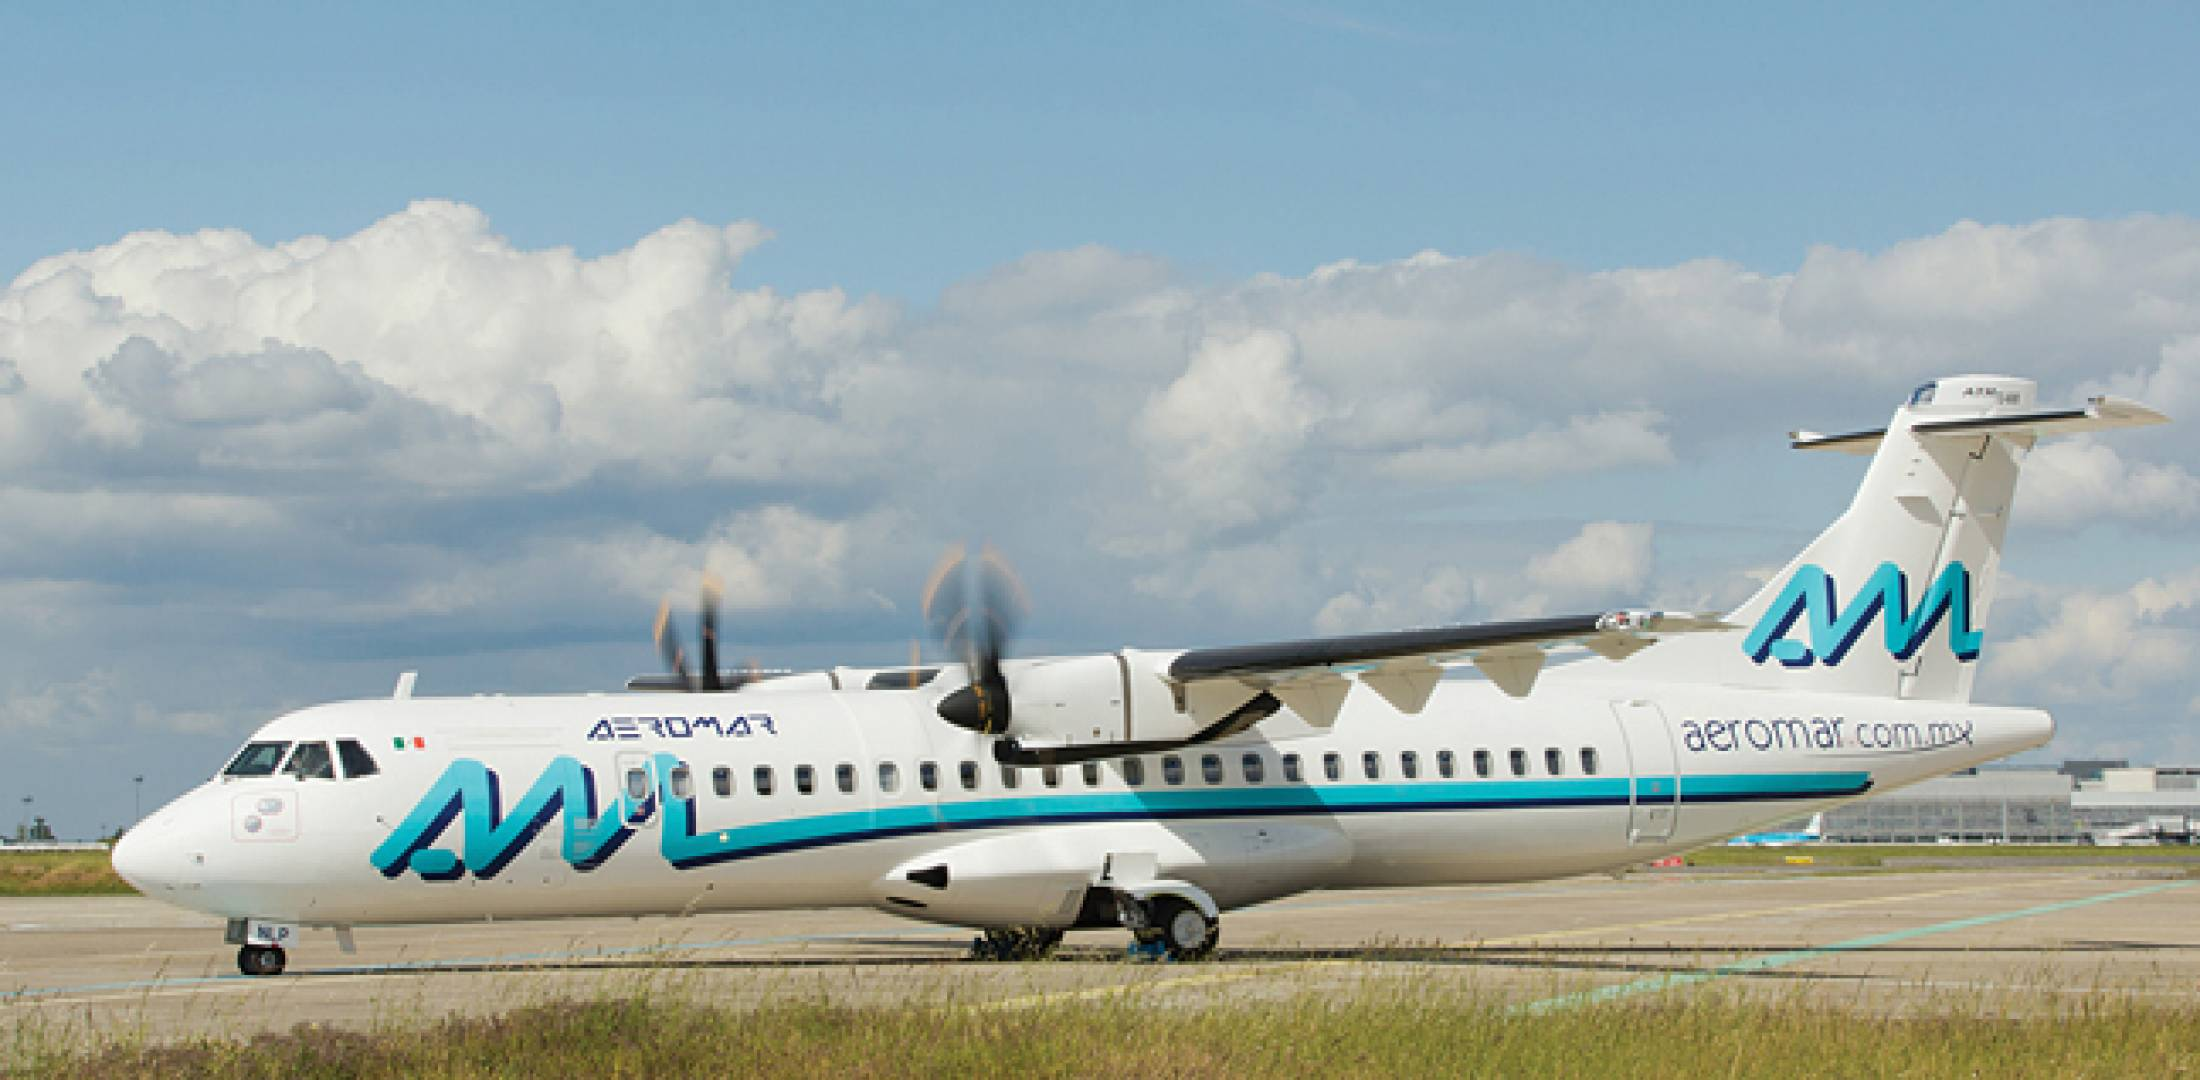 Mexican carrier Aeromar's first ATR 72-600 rolls out. It is the first of two -600 models that Aeromar ordered from Air Lease.